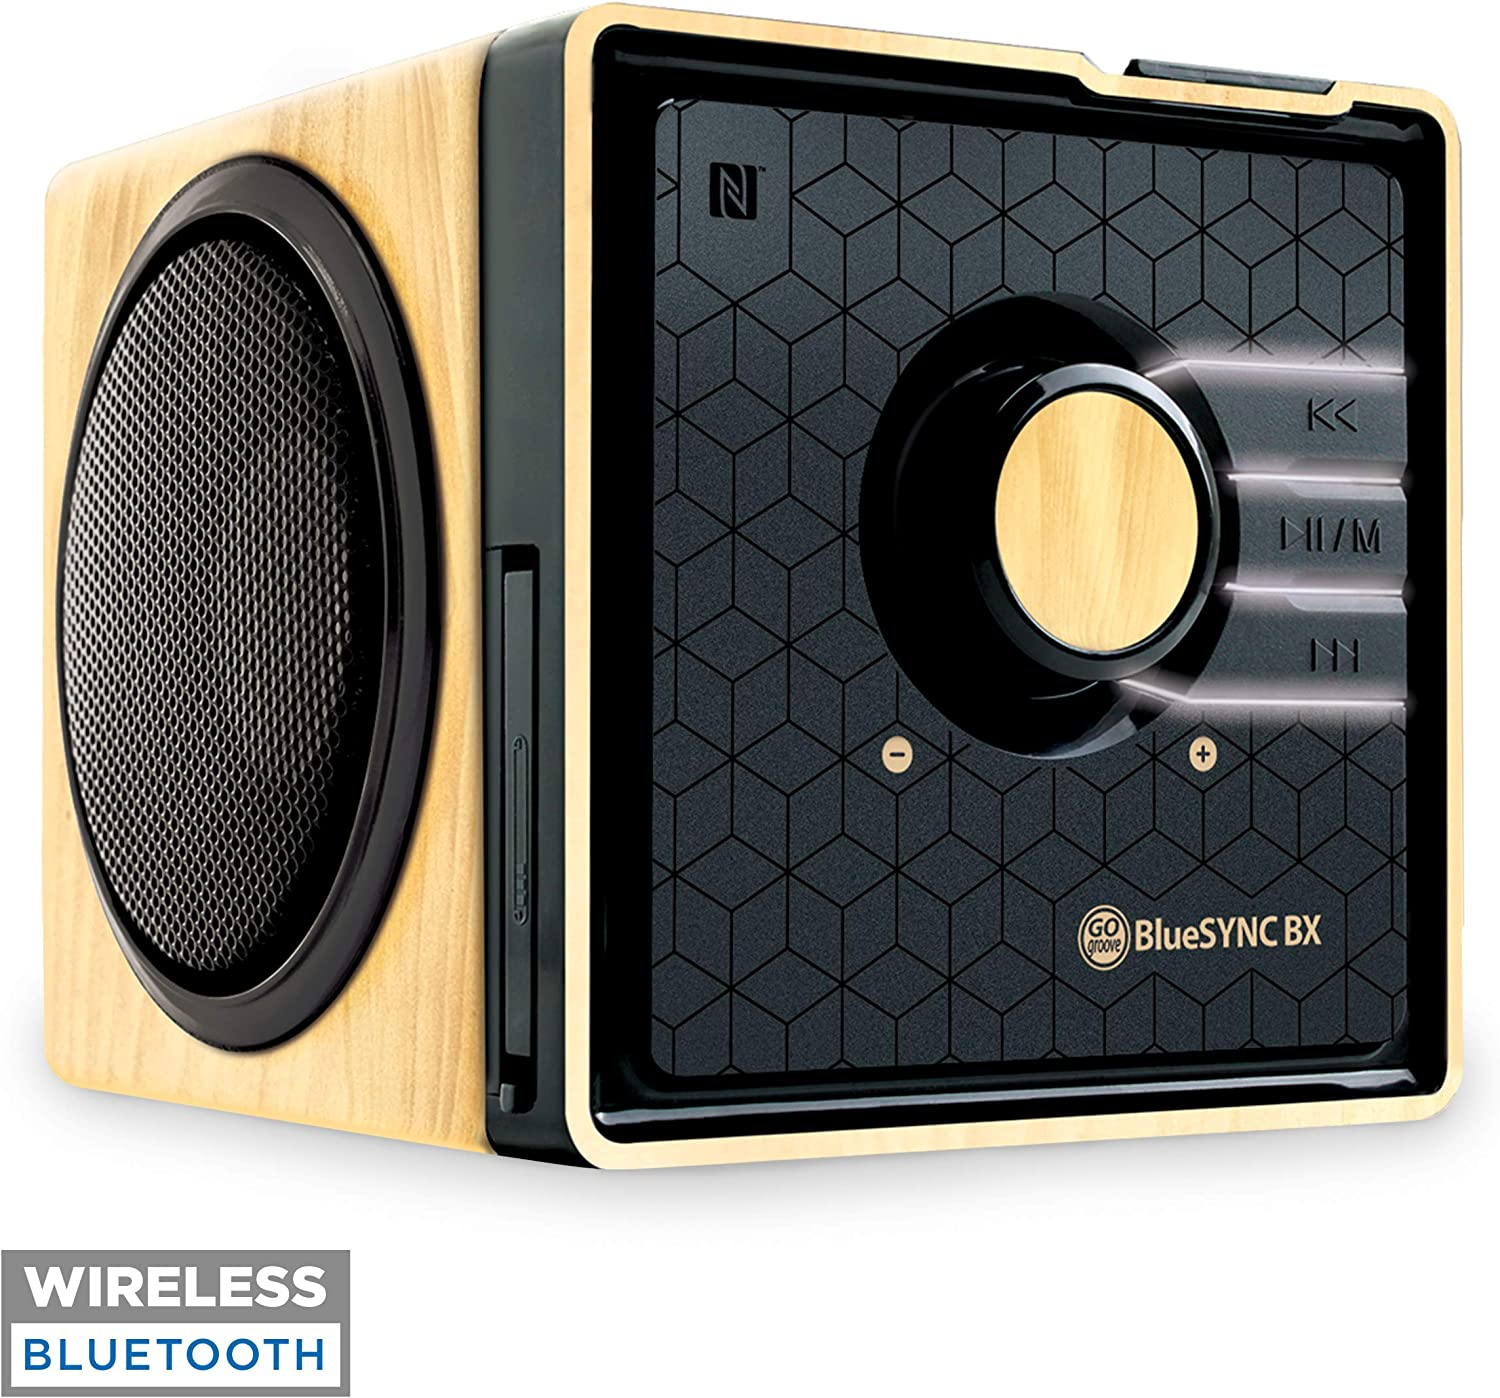 GOgroove BlueSYNC BX Portable Wireless Bluetooth Speaker - Rechargeable Compact Speaker with NFC, AUX and USB Inputs, Mic, Playback Controls for Flash Media, 4-6 Hour Battery (Wireless, Wood Brown)